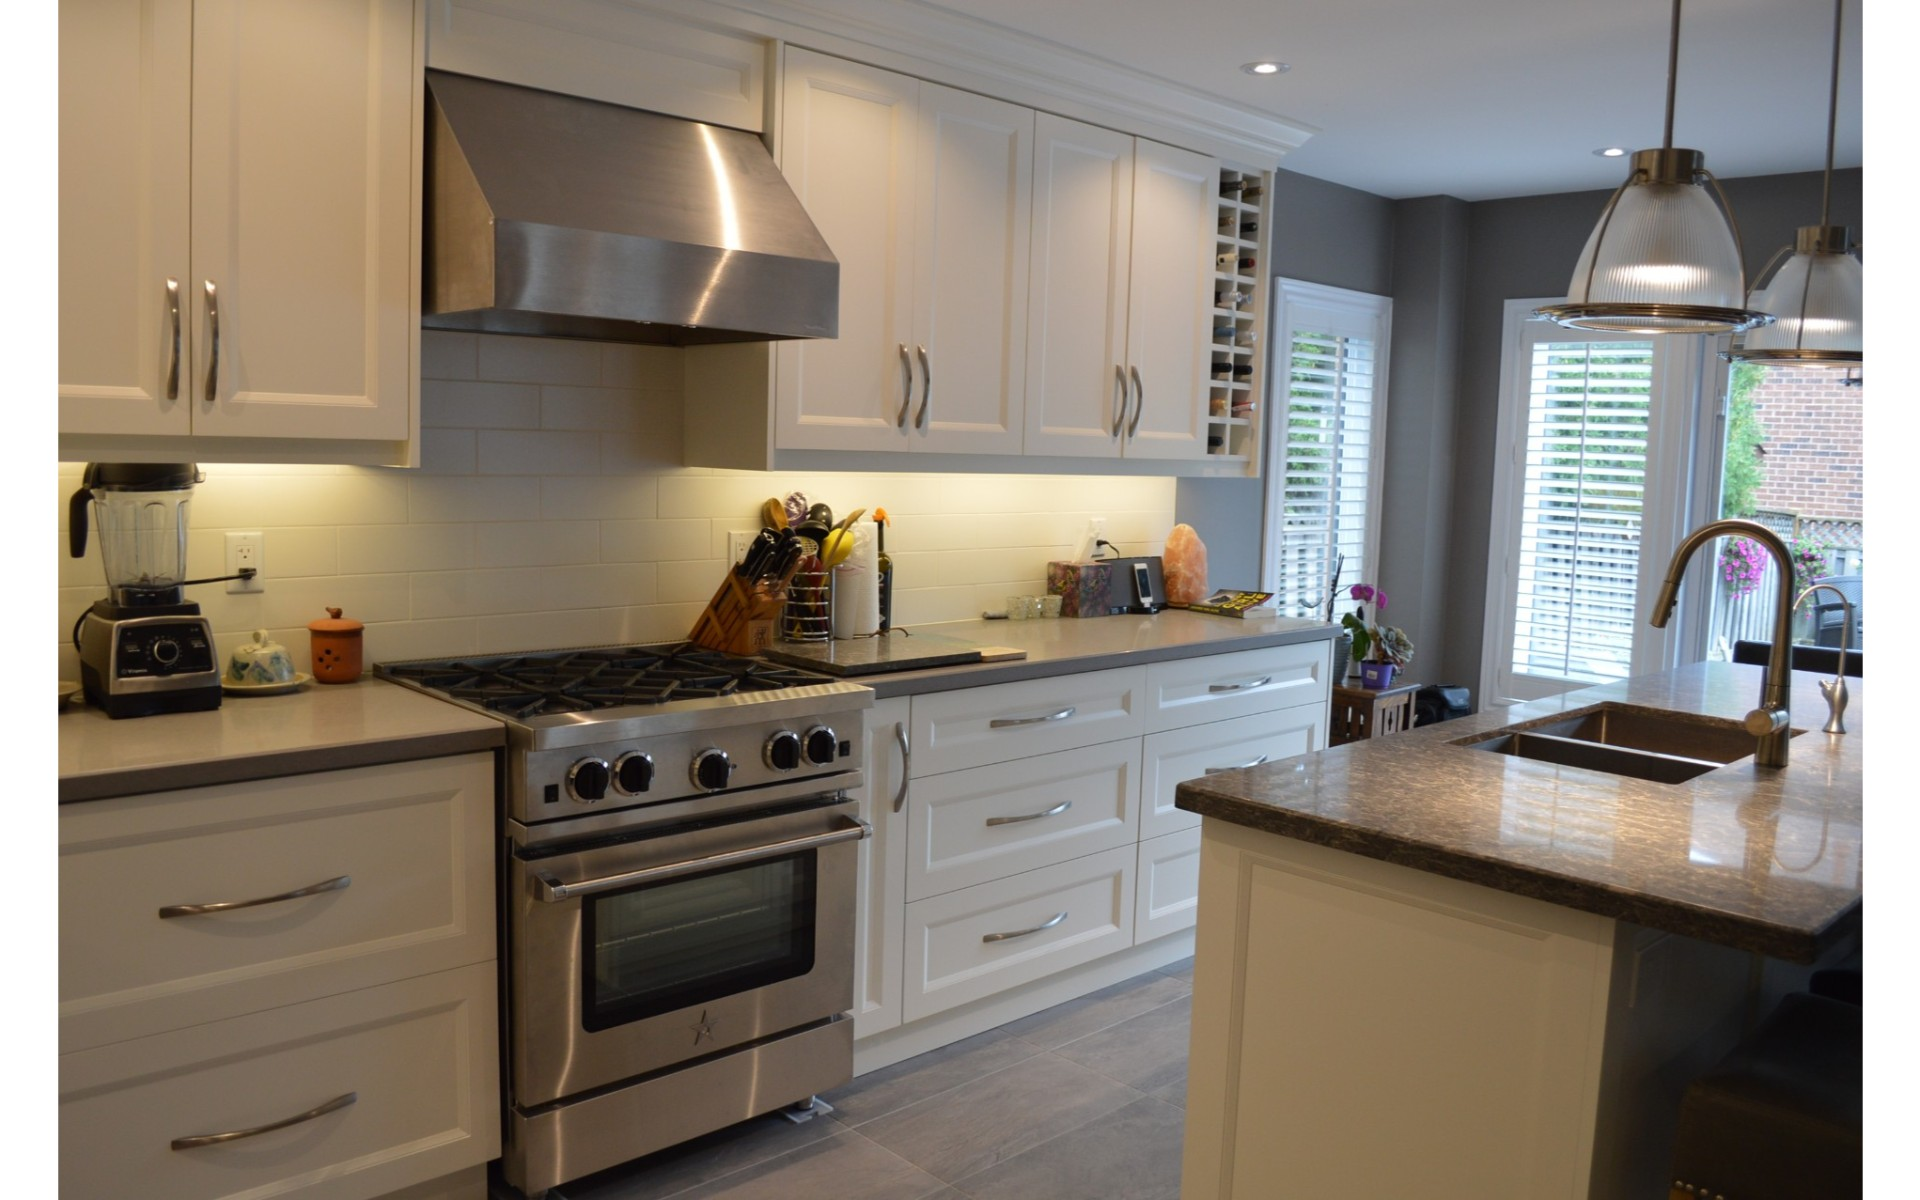 Kitchen with stainless steel appliances and white cabinets